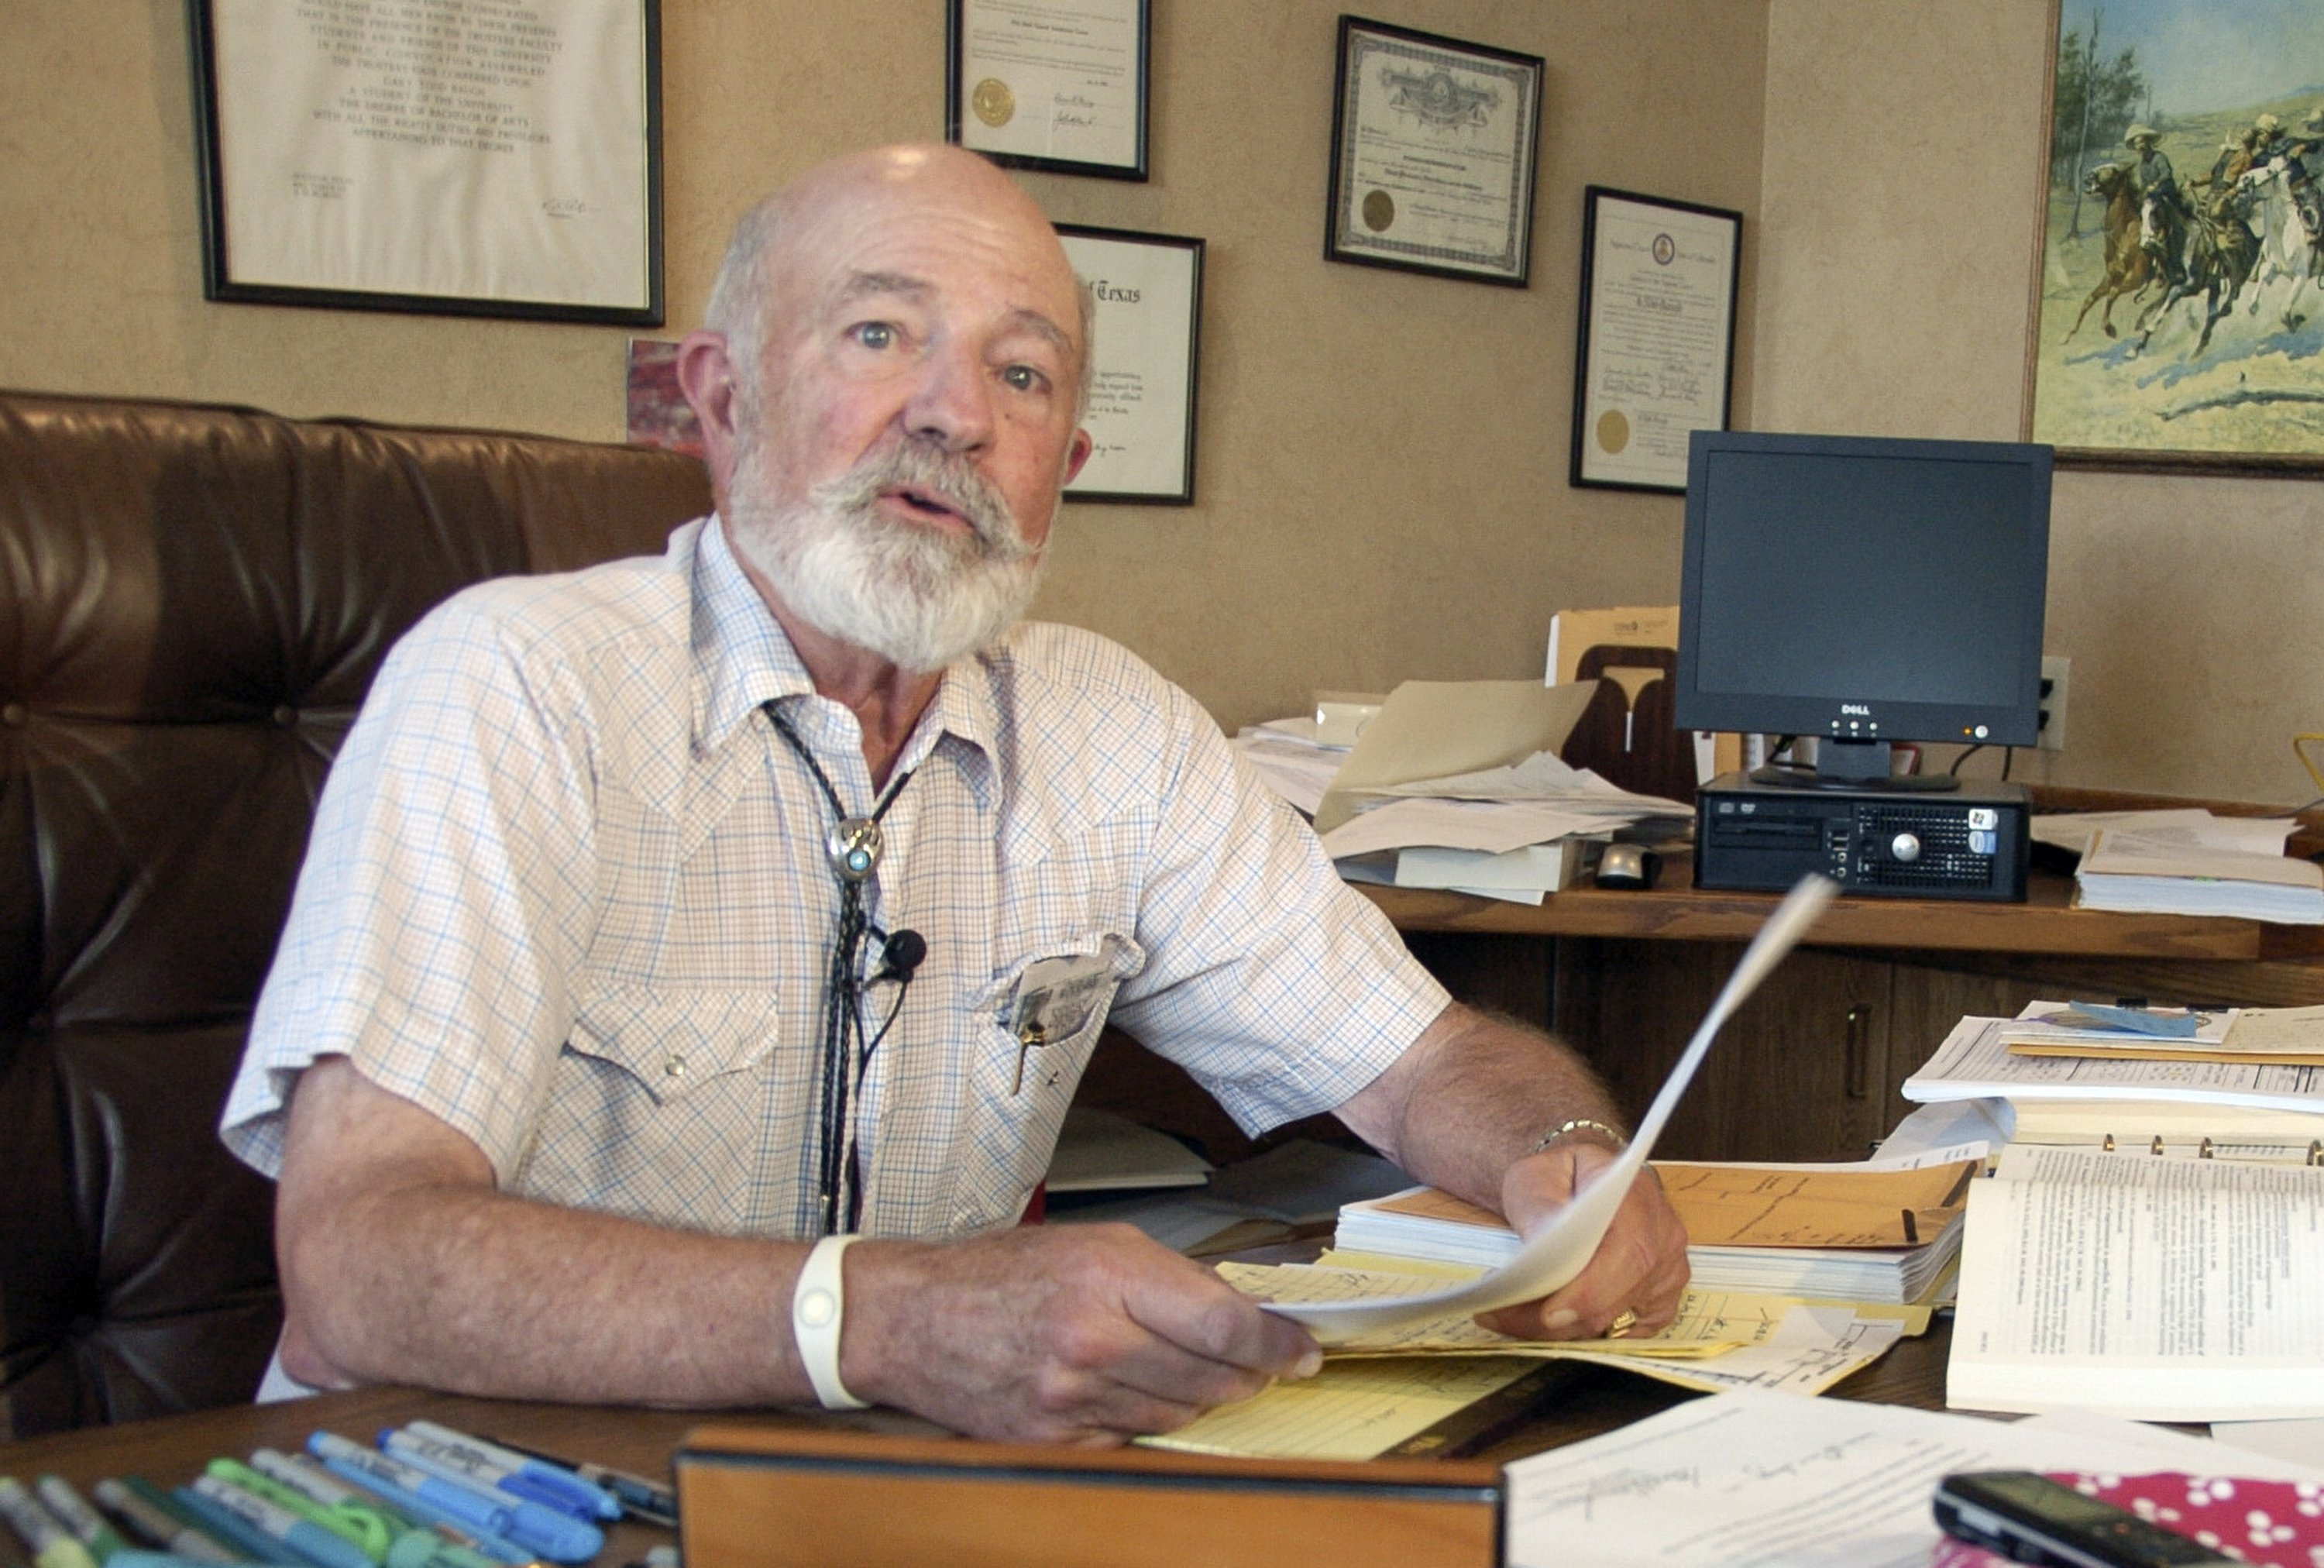 Montana District Judge G. Todd Baugh reads a statement on Aug. 28, 2013 apologizing for remarks he made about a 14-year-old girl raped by a teacher in Billings, Mont.